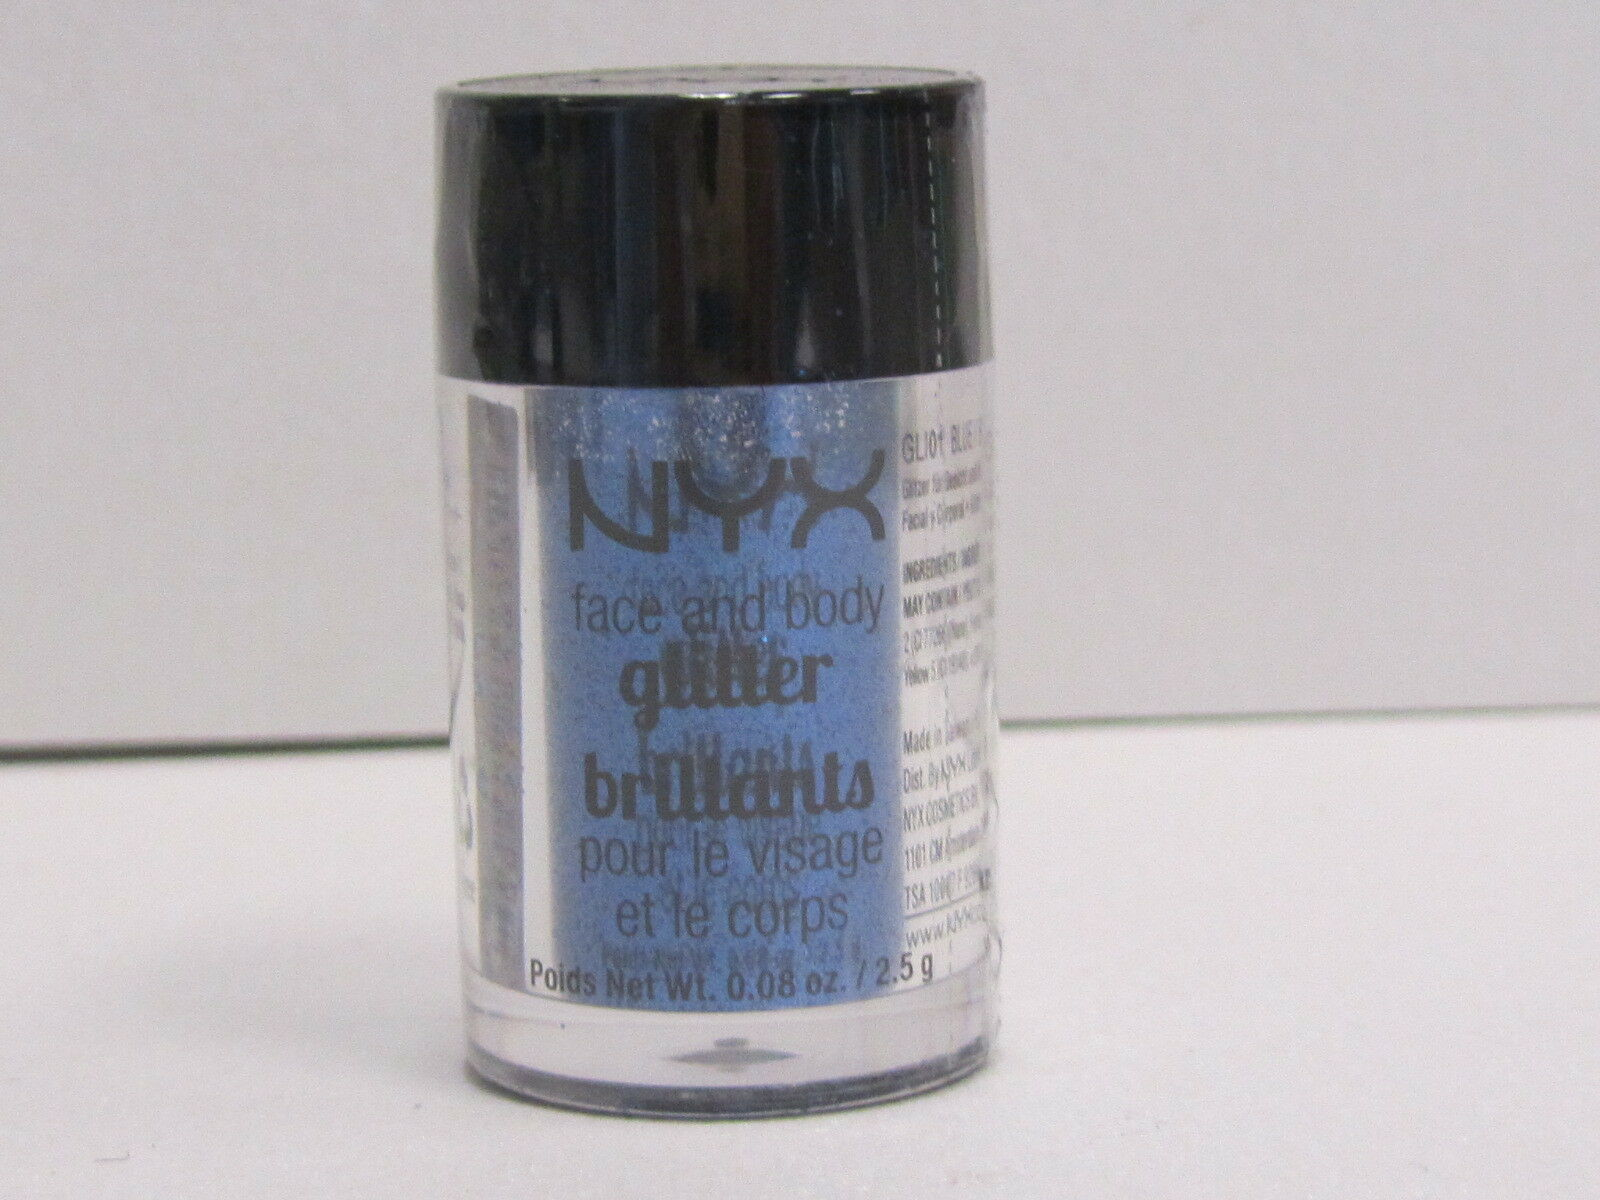 NYX Face and Body Glitter color GLI01 Blue 0.08 oz Brand New With Sealed